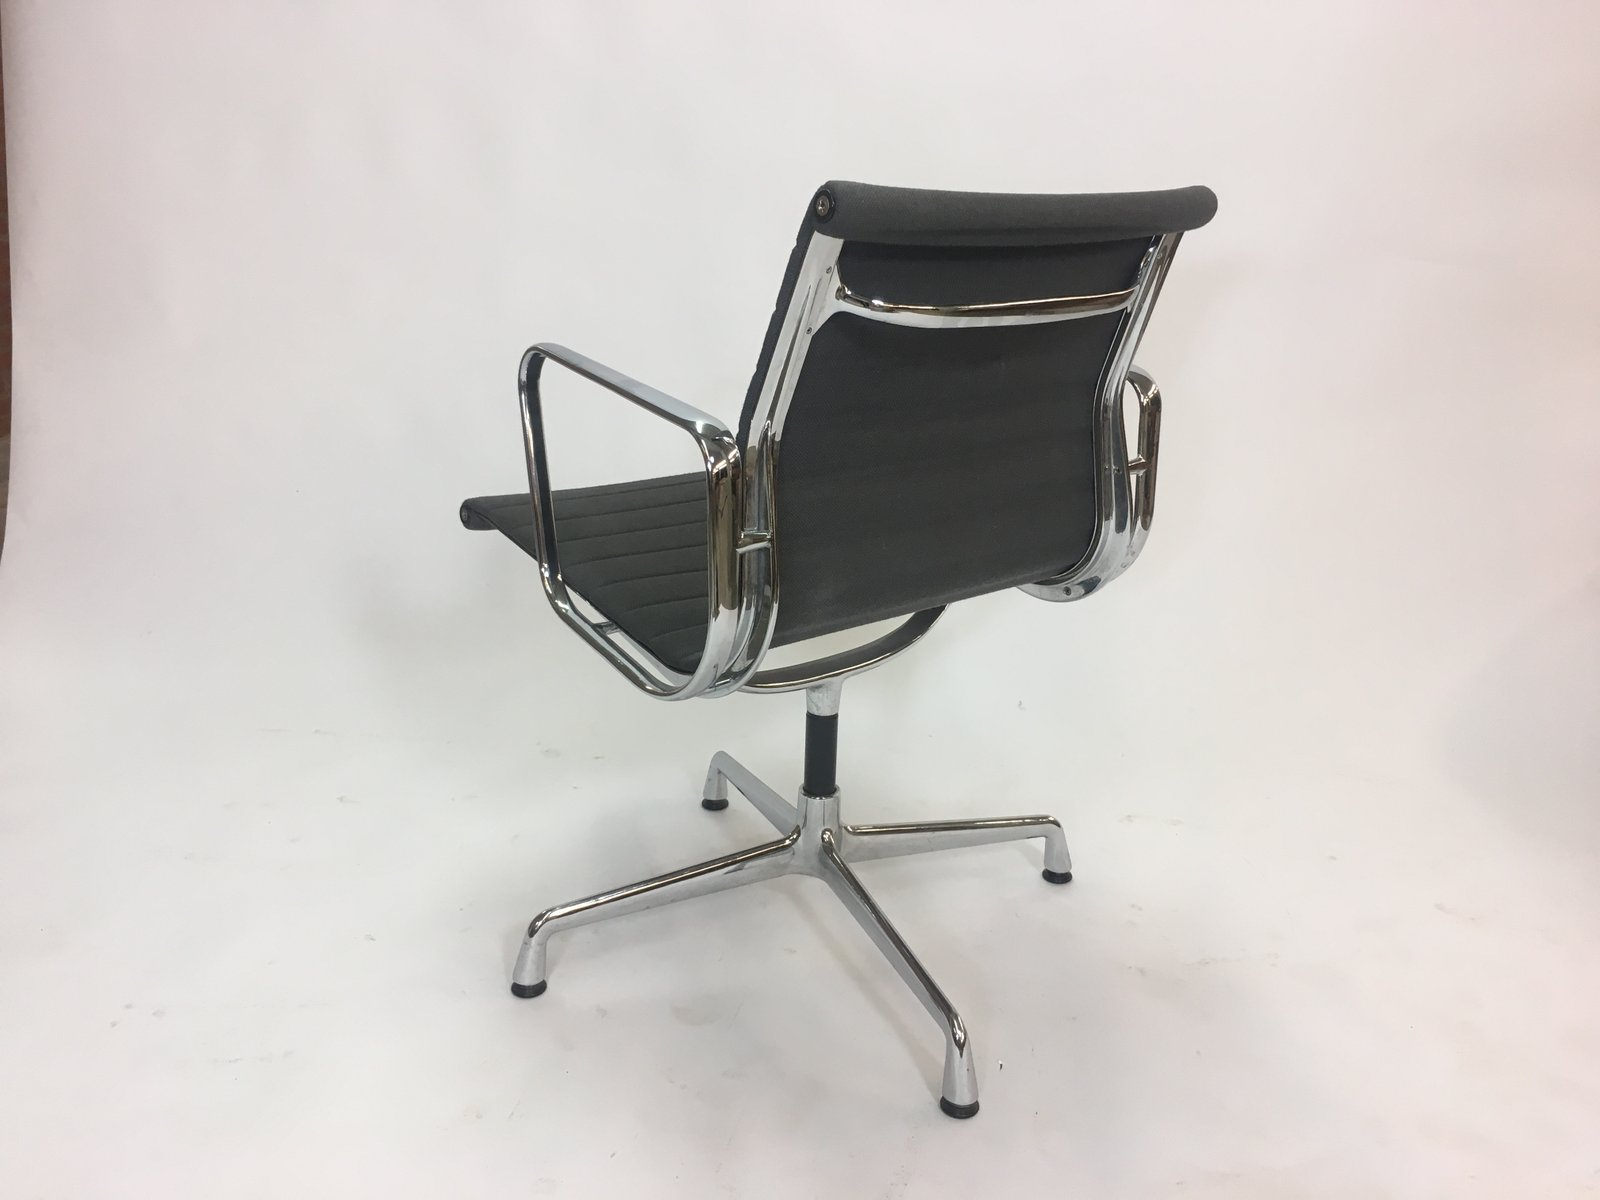 Eames 108 Ea 108 Aluminum Chairs By Charles Ray Eames For Vitra 1980s